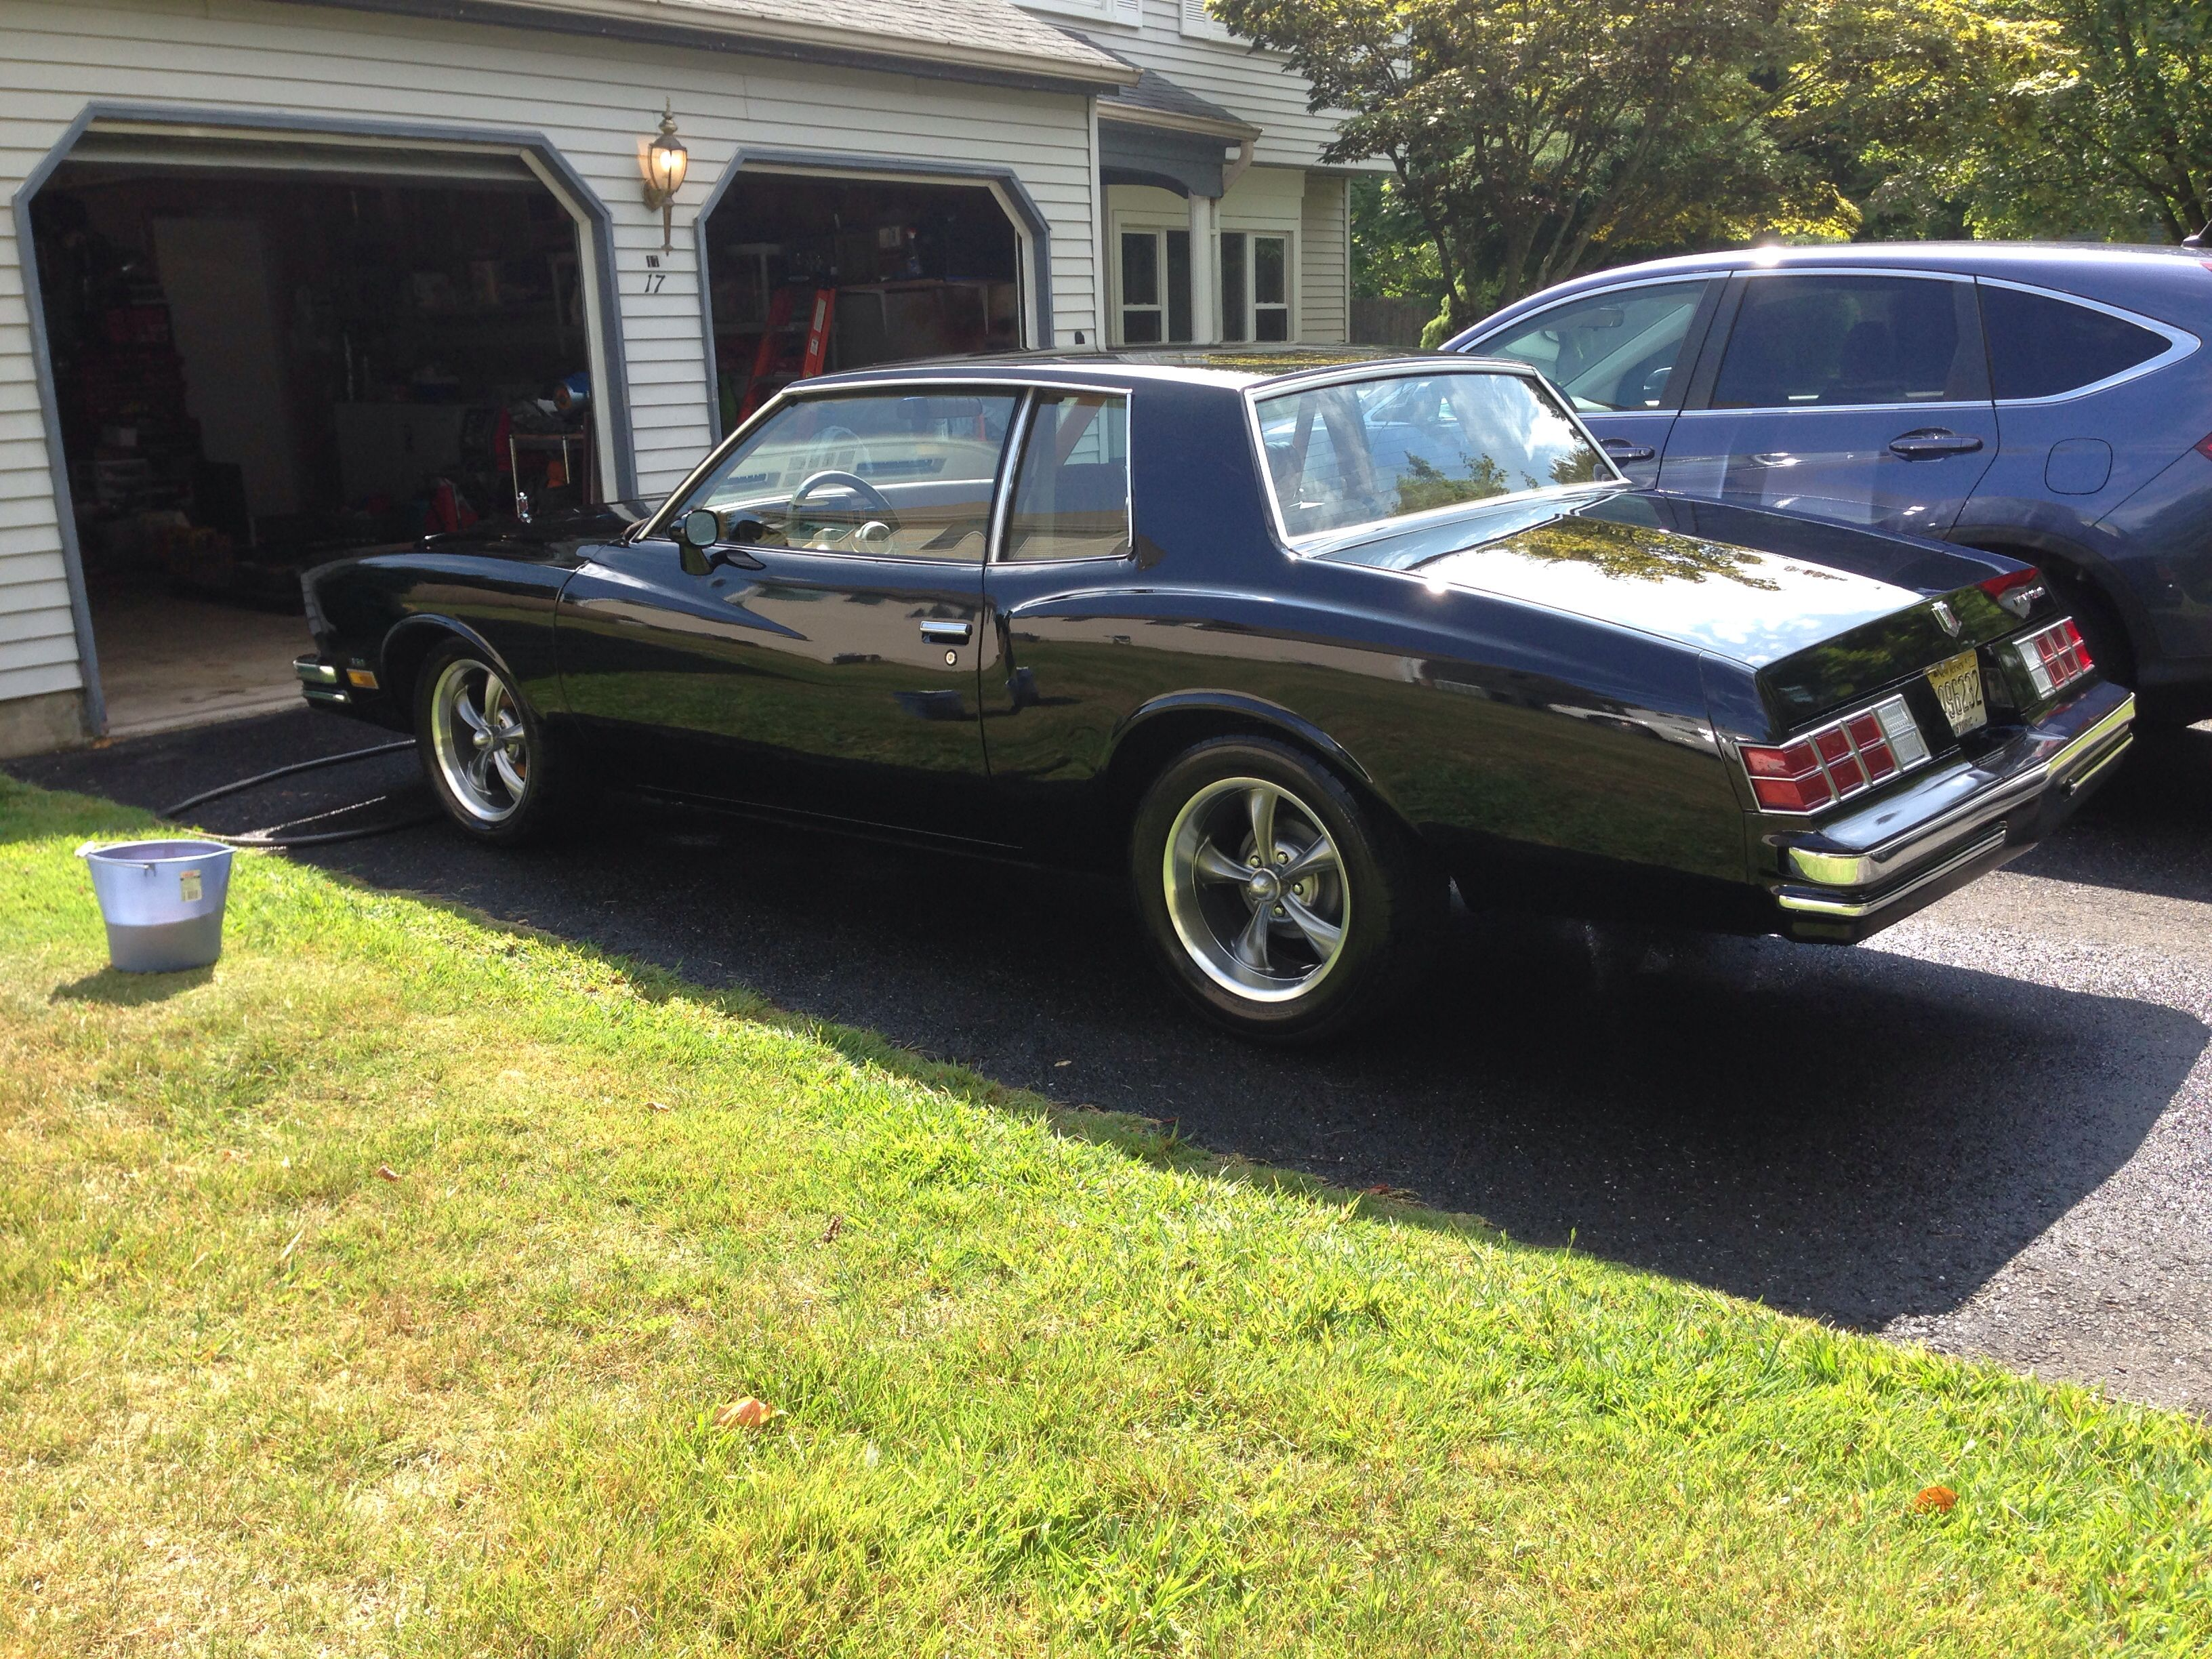 1980 Monte Carlo Cleaned Up Chevrolet Monte Carlo Donk Cars Gm Car